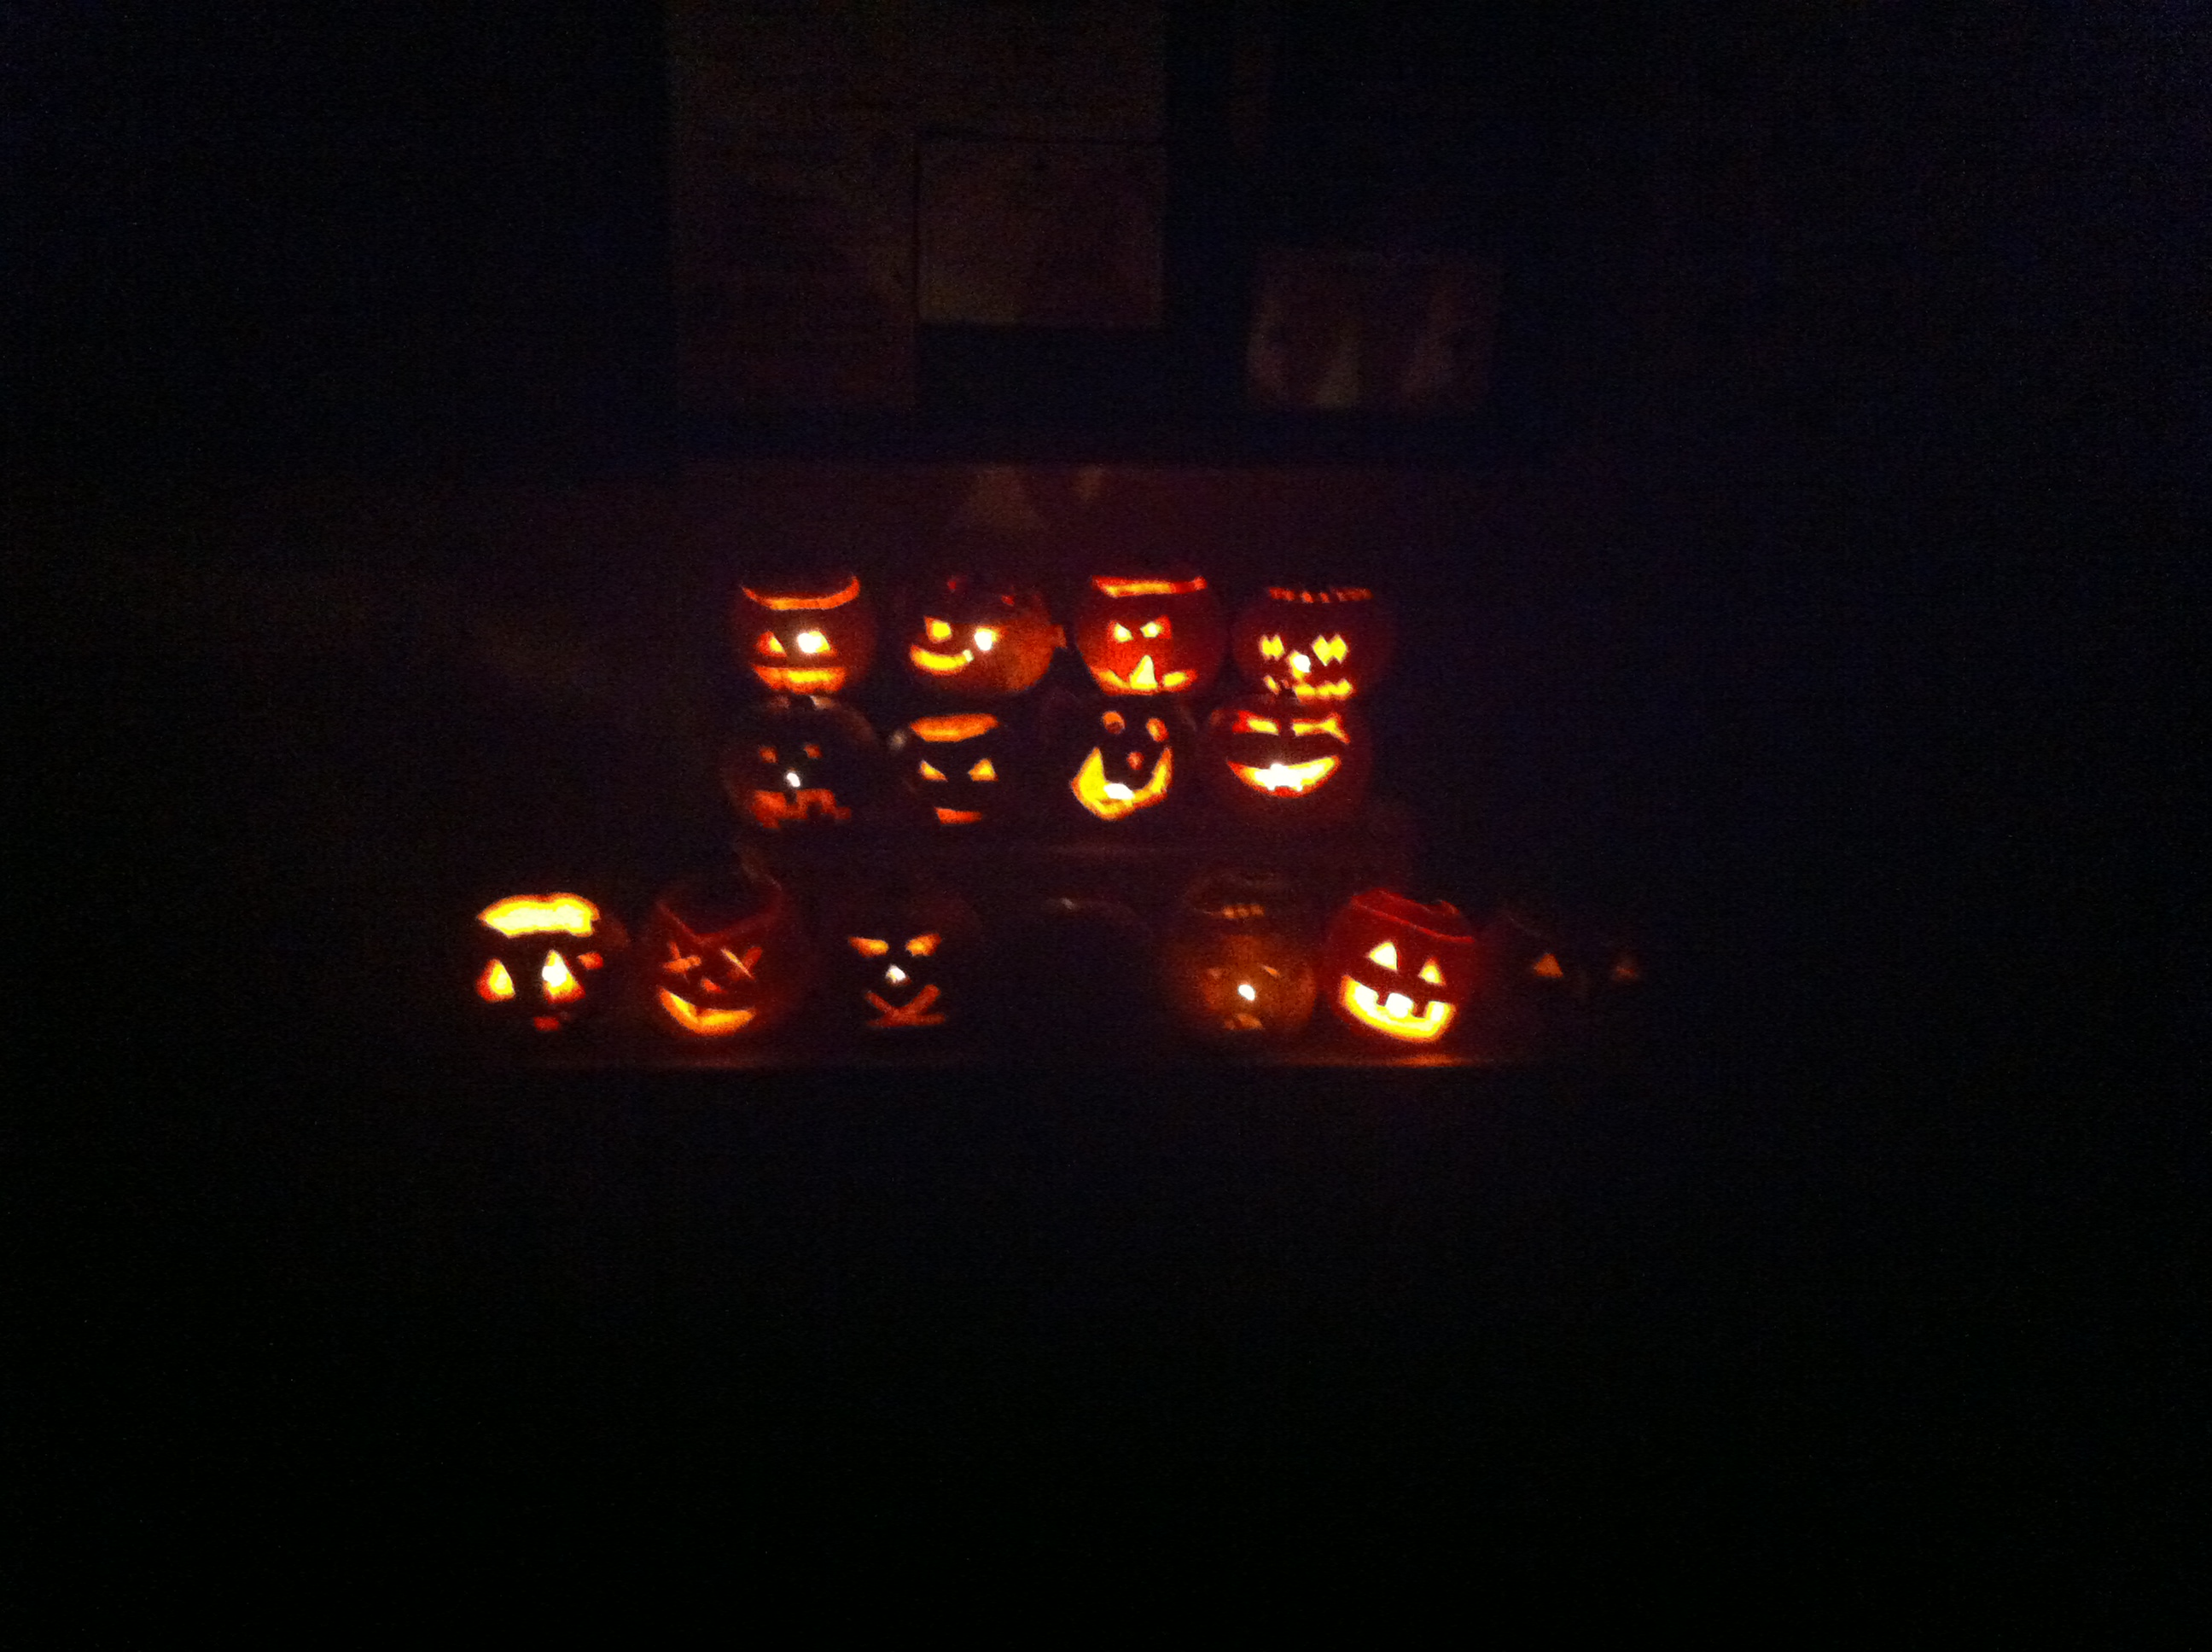 Carved pumpkins by night